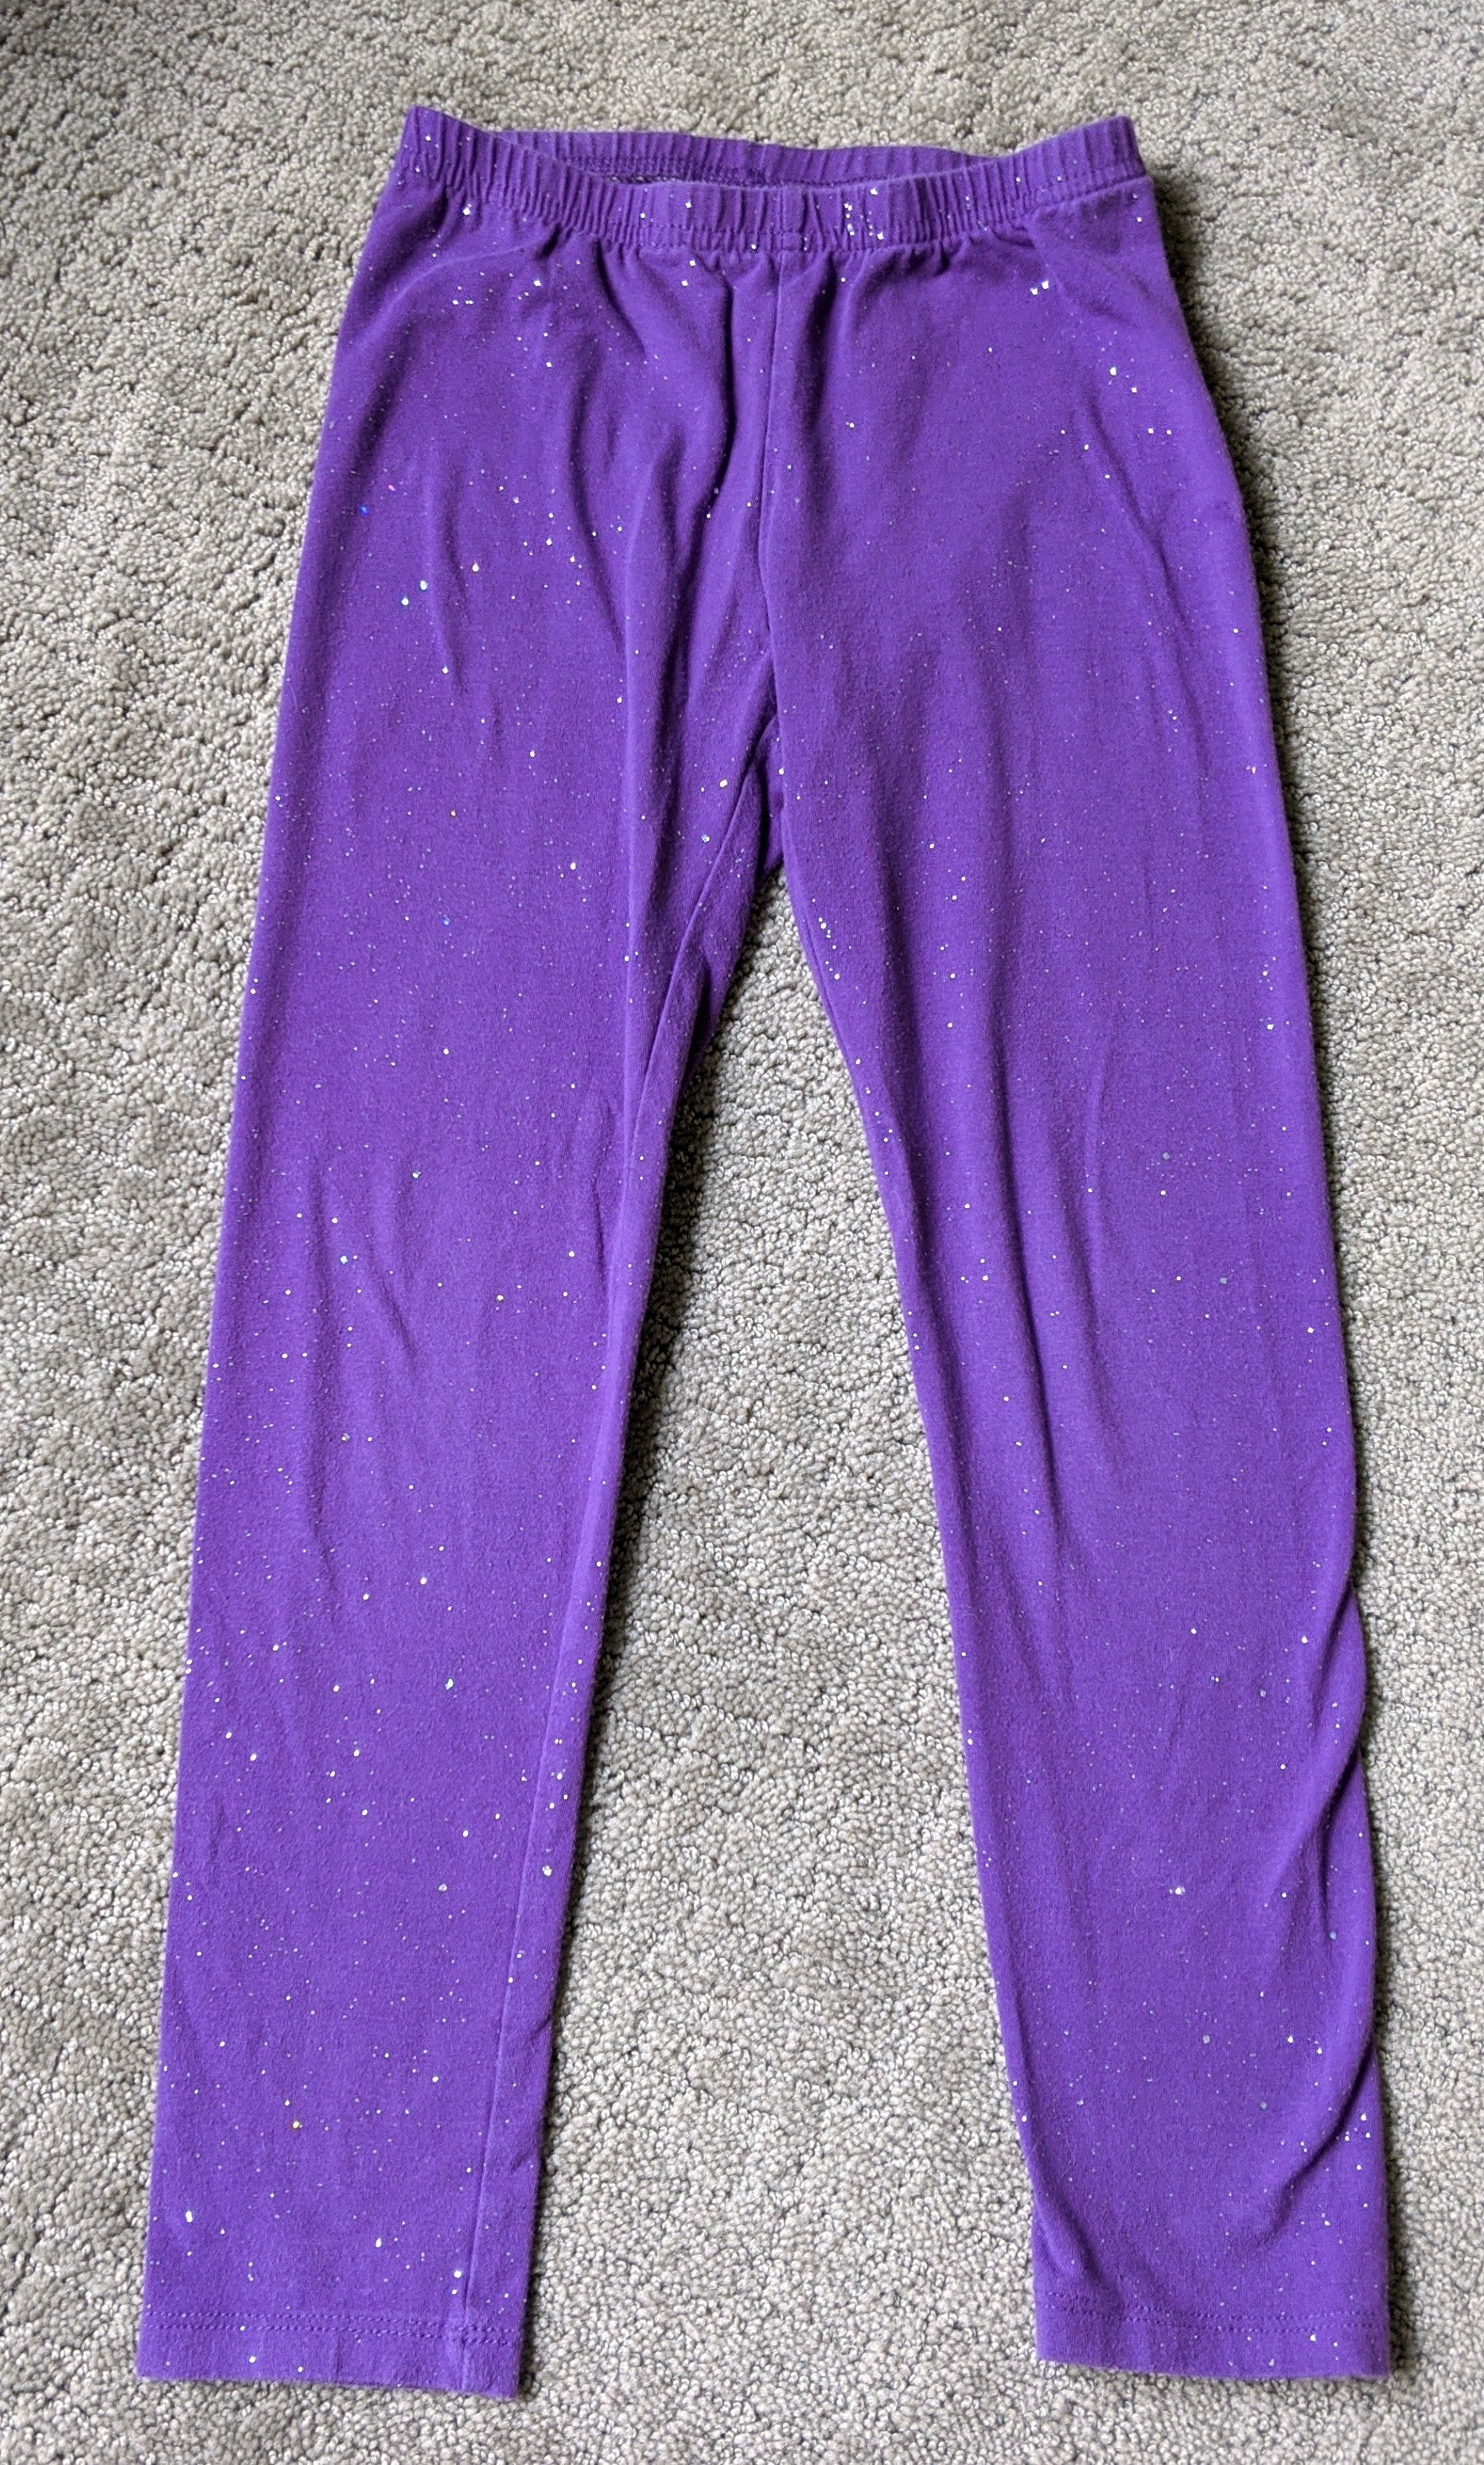 Jumping Bean purple with silver glitter sparkles leggings, Size 6X